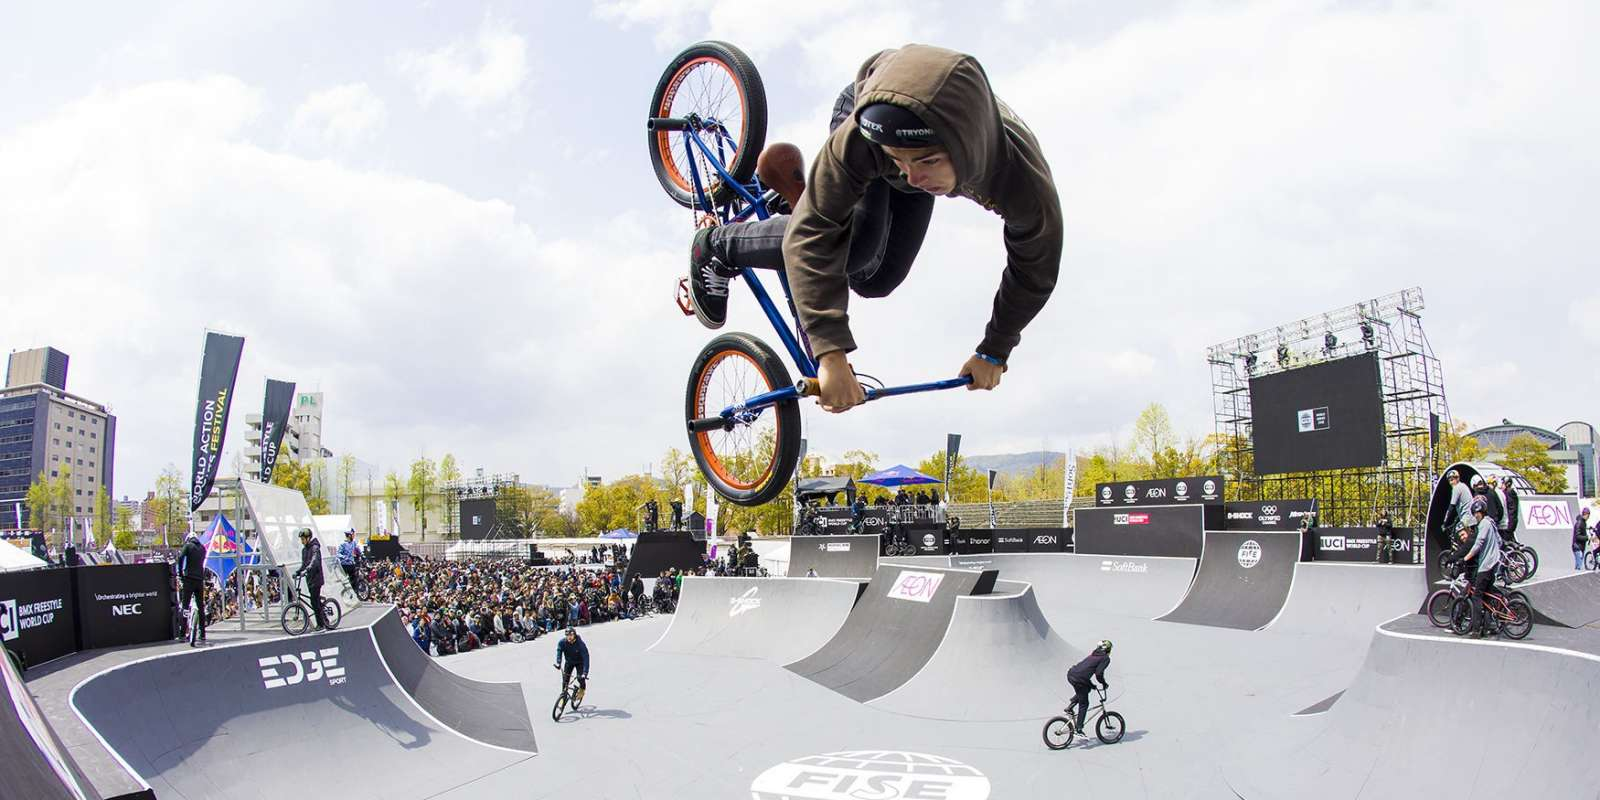 First stop of the FISE World Series in Hiroshima, Japan